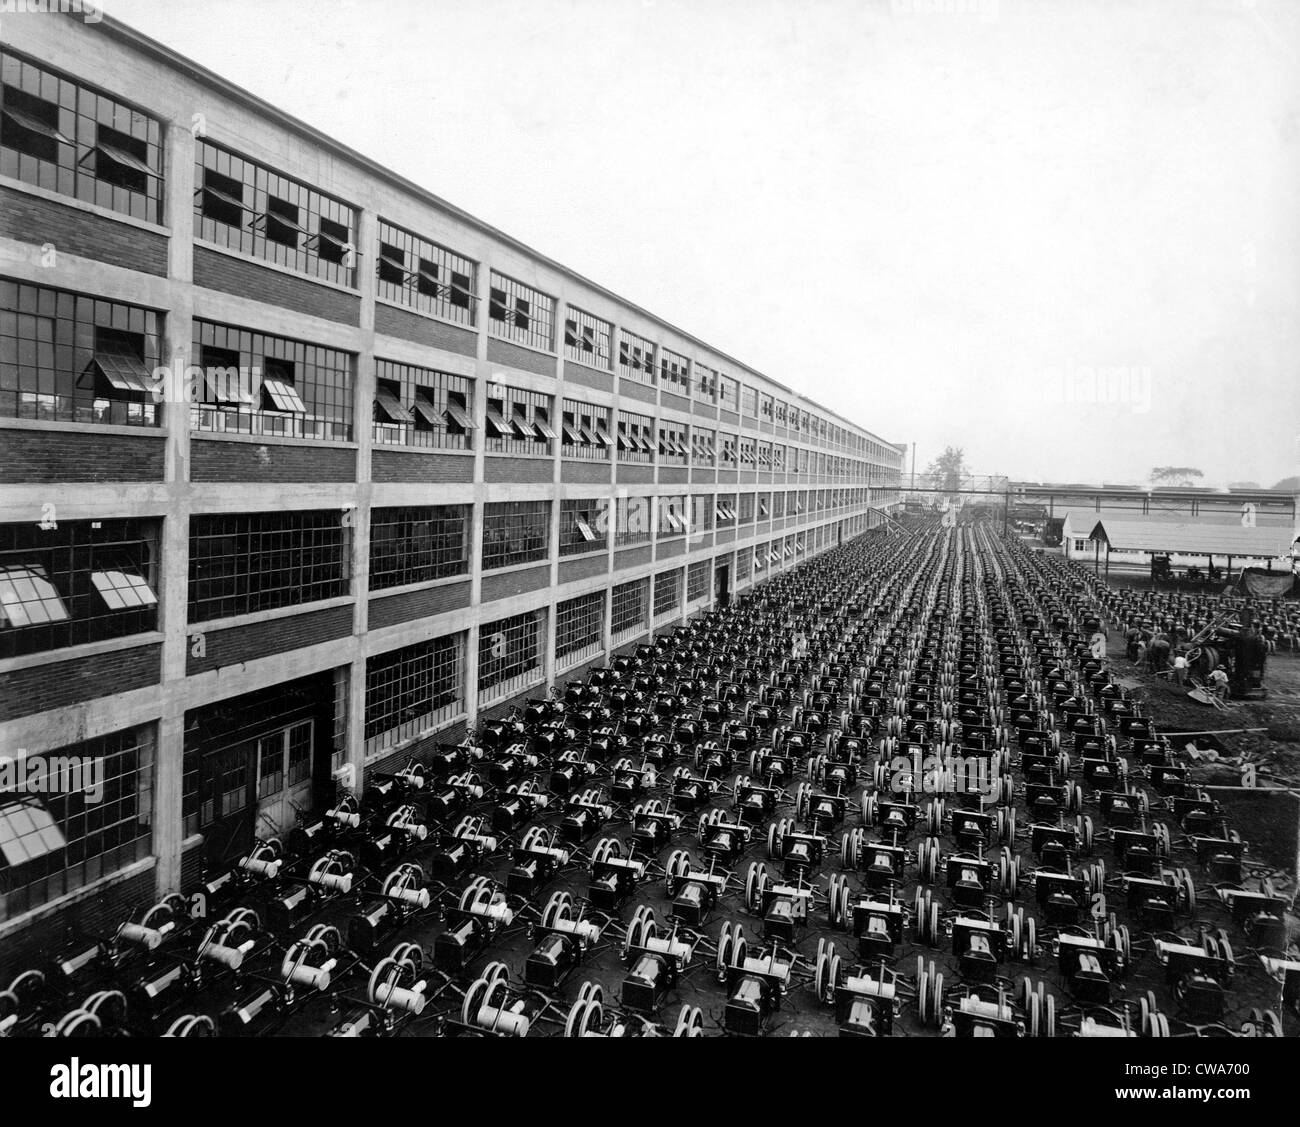 FORD MOTOR CO. - Highland Park Anlage... Höflichkeit: CSU Archive / Everett Collection Stockbild